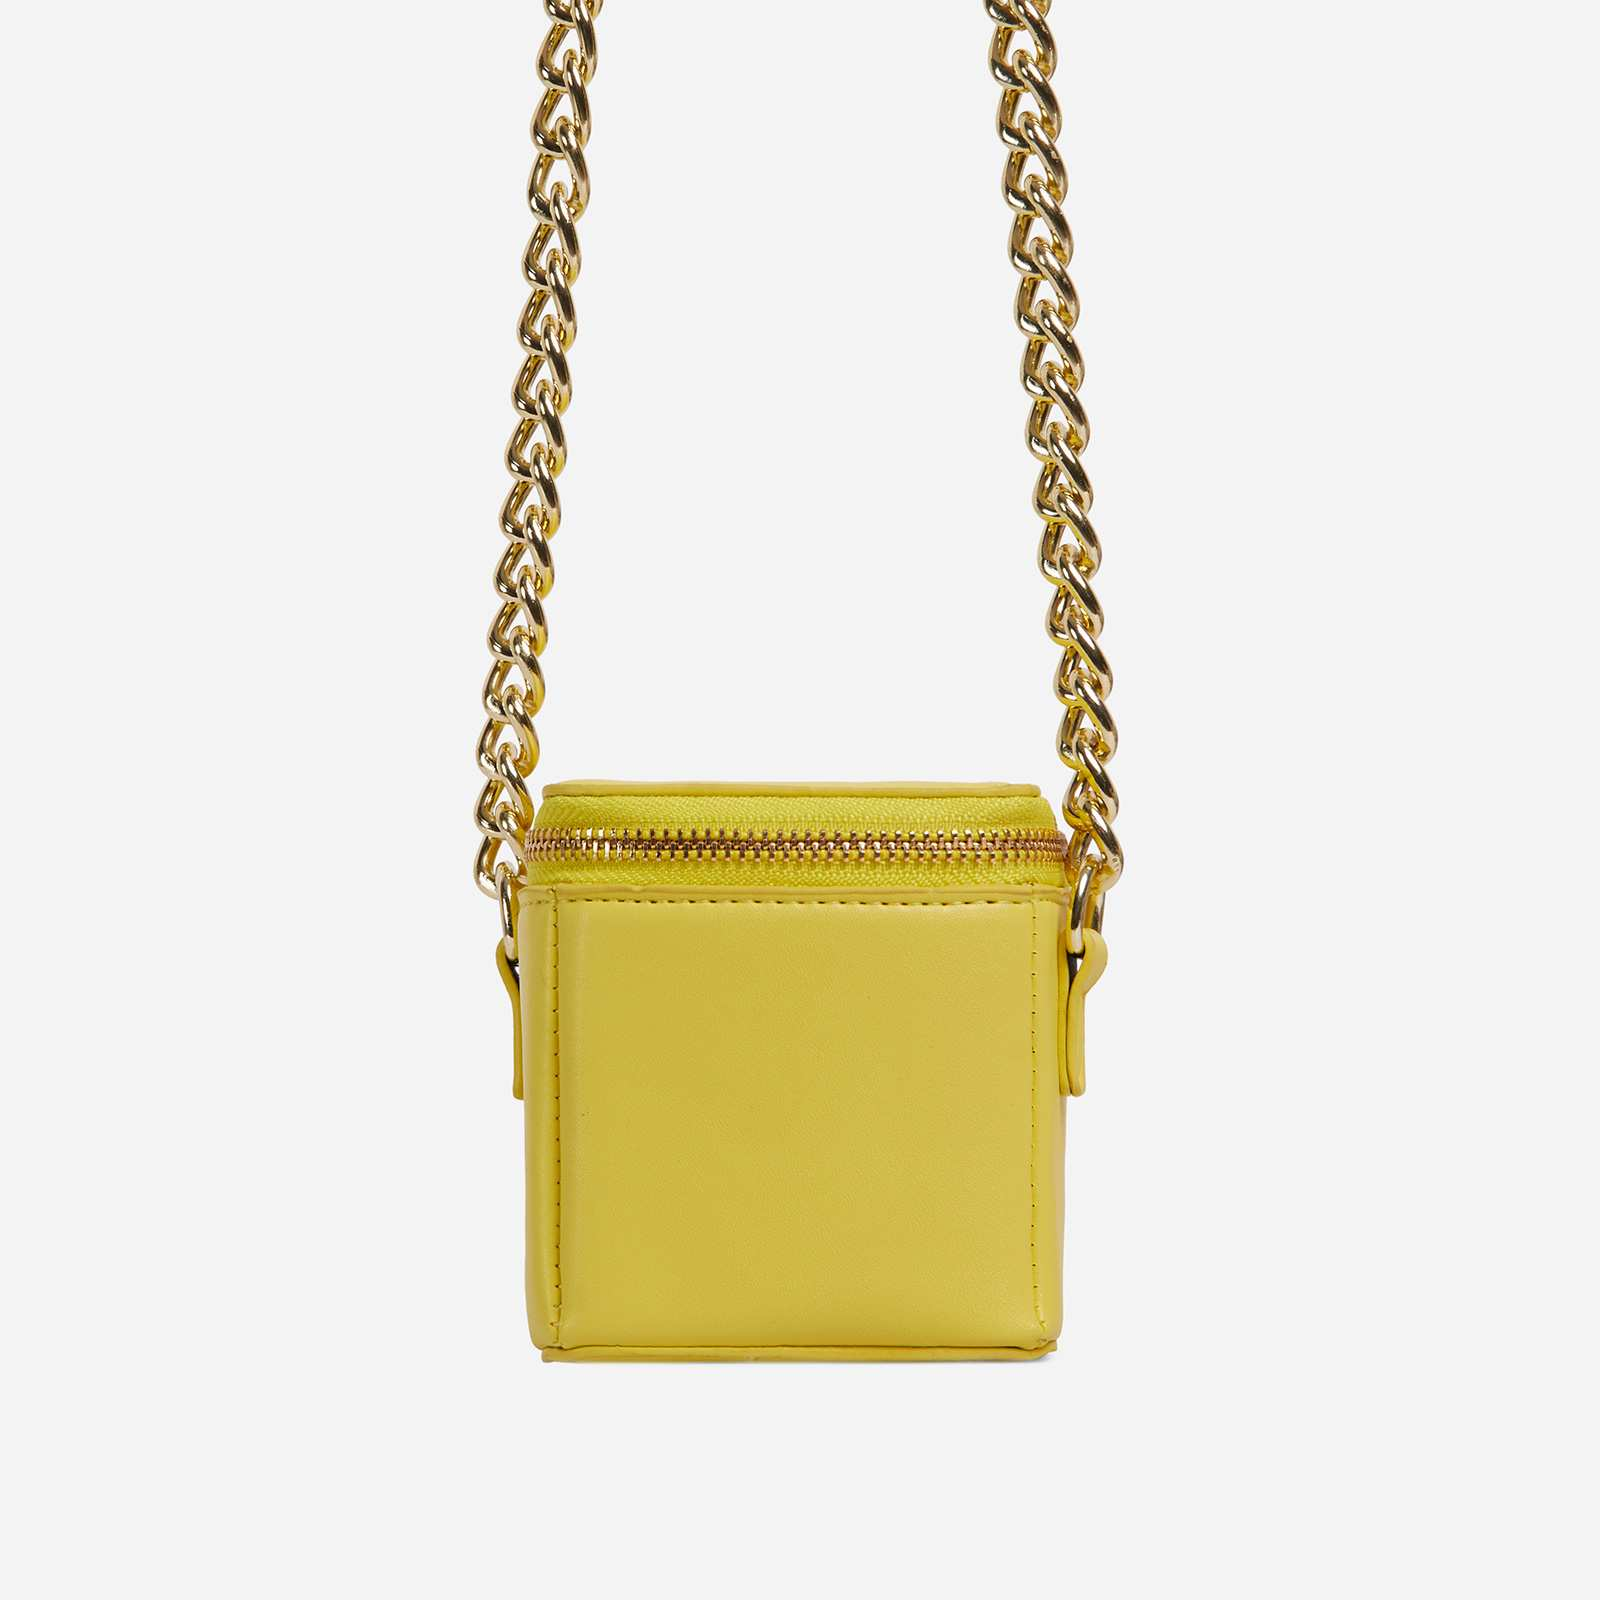 Nate Chunky Chain Cross Body Box Mini Bag In Lime Green Faux Leather